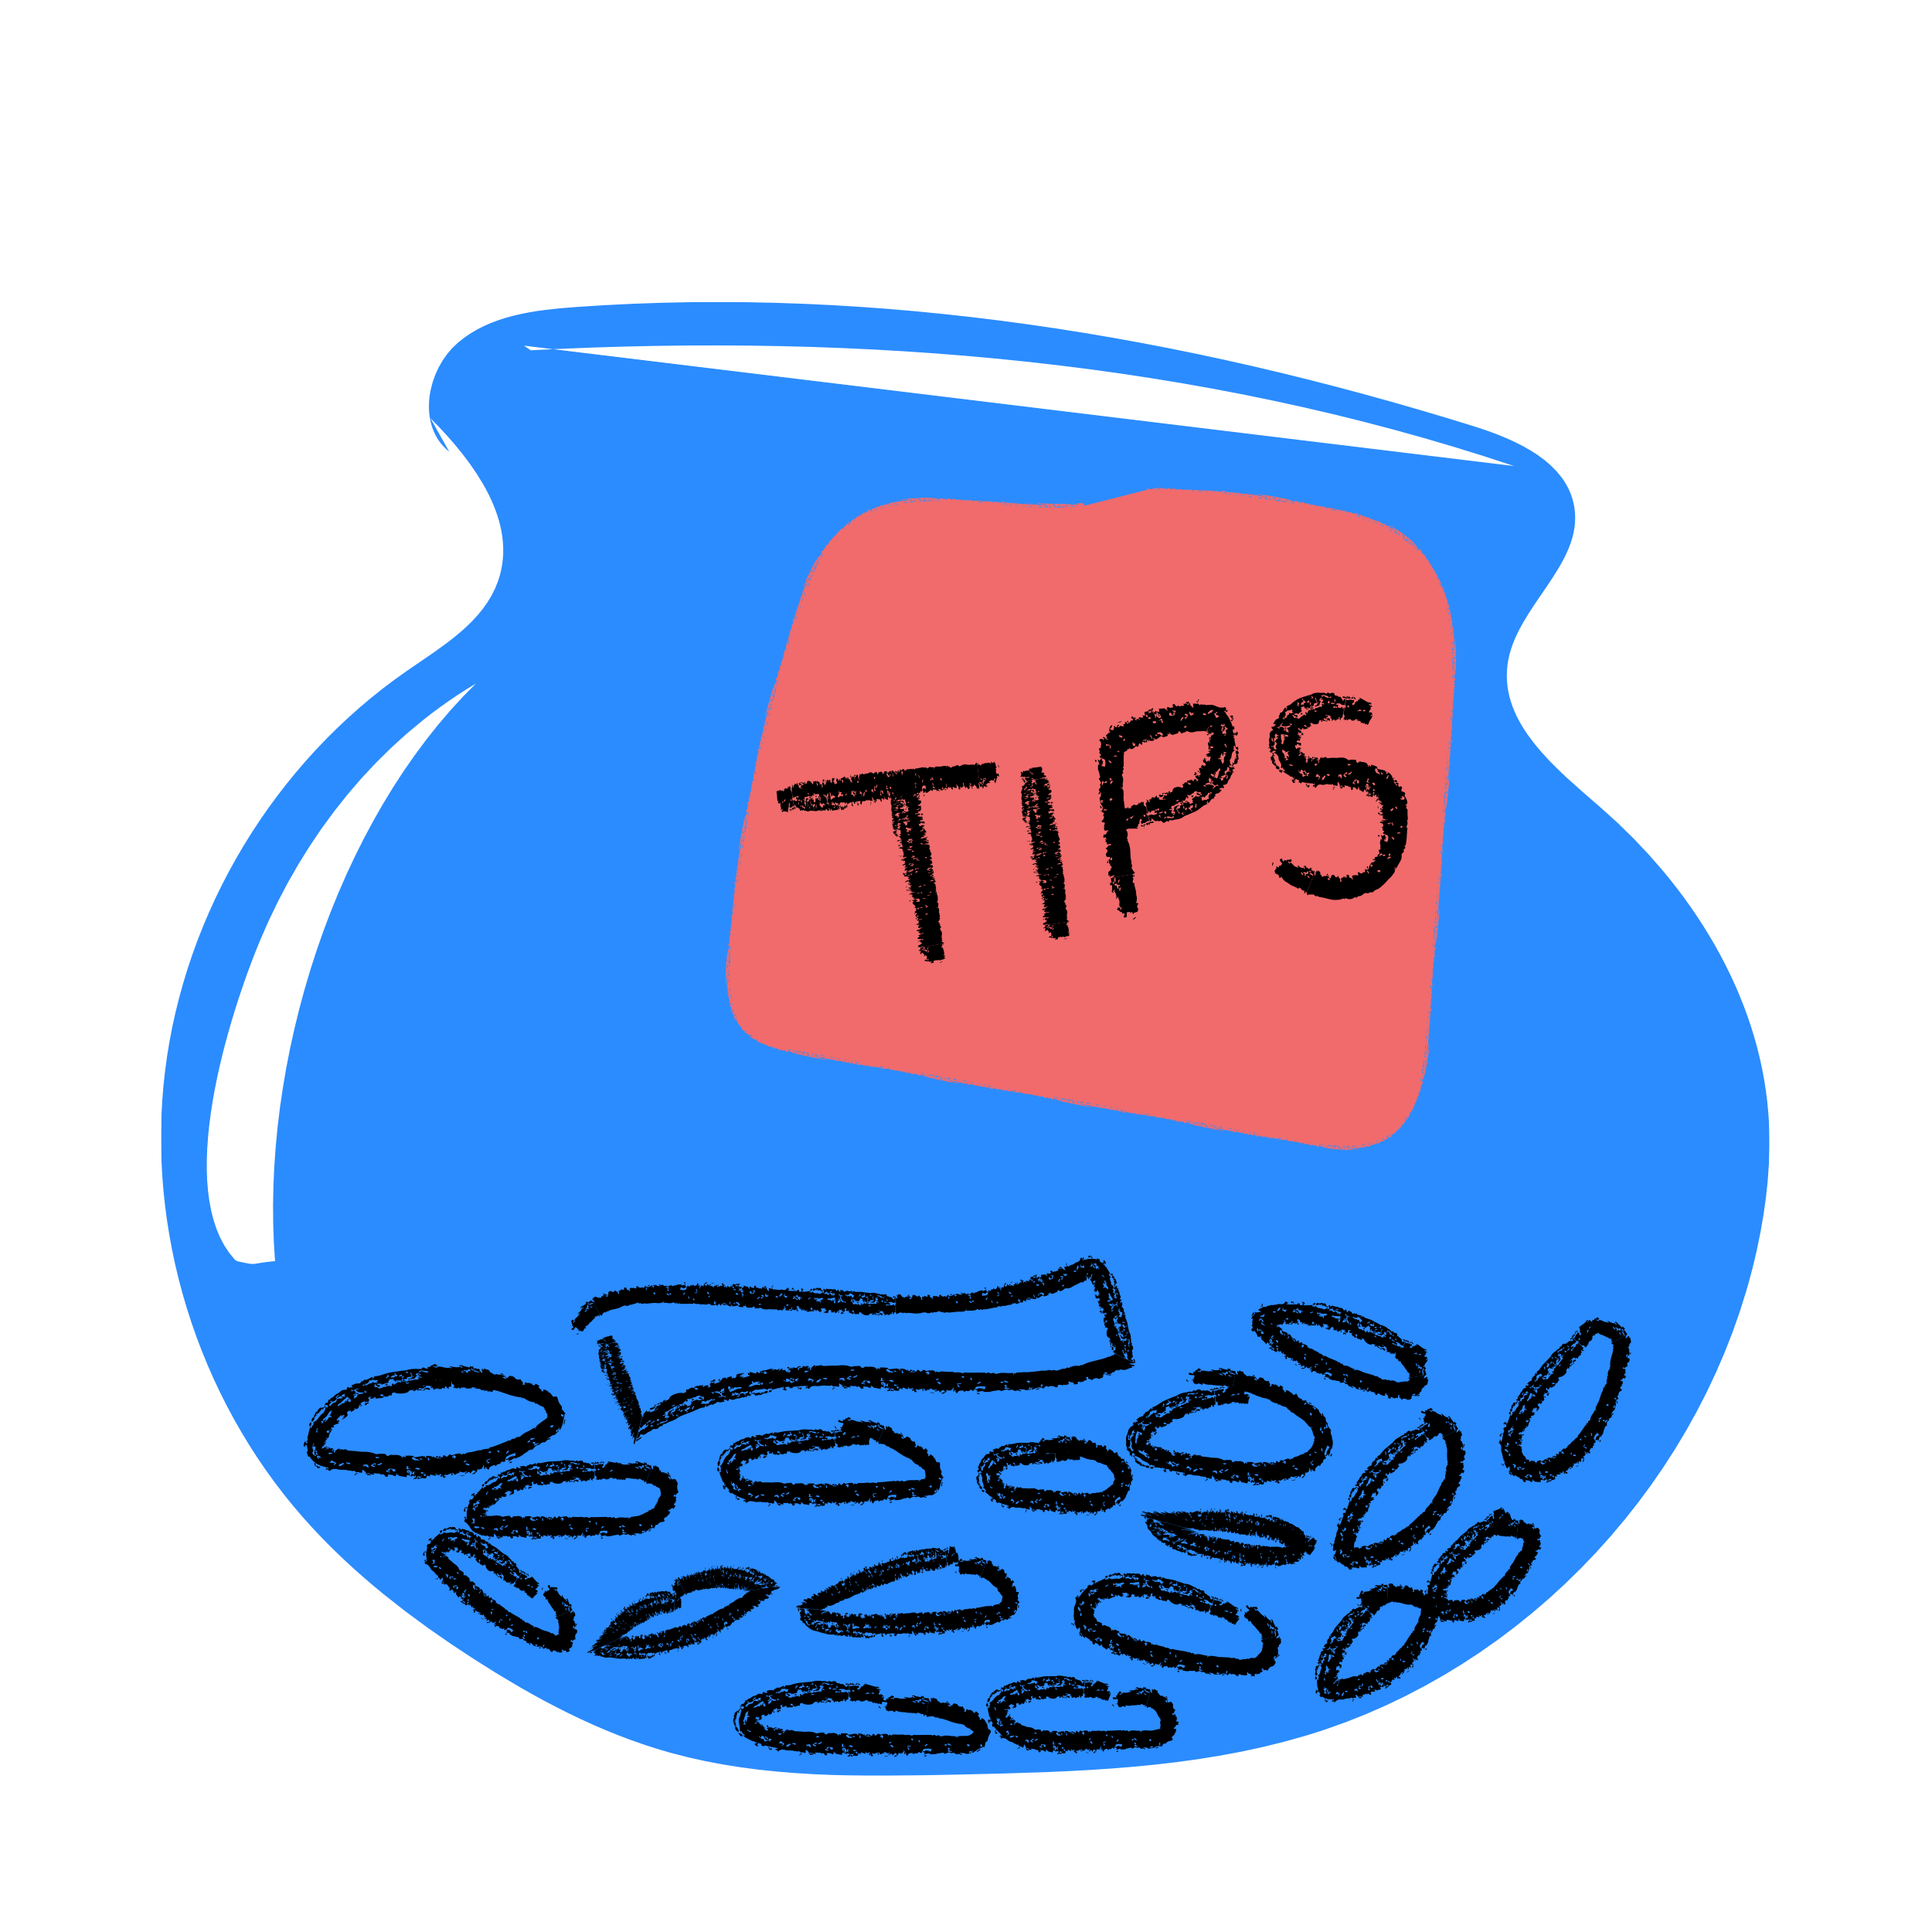 Rethinking the Tip Jar  A new take on an old classic